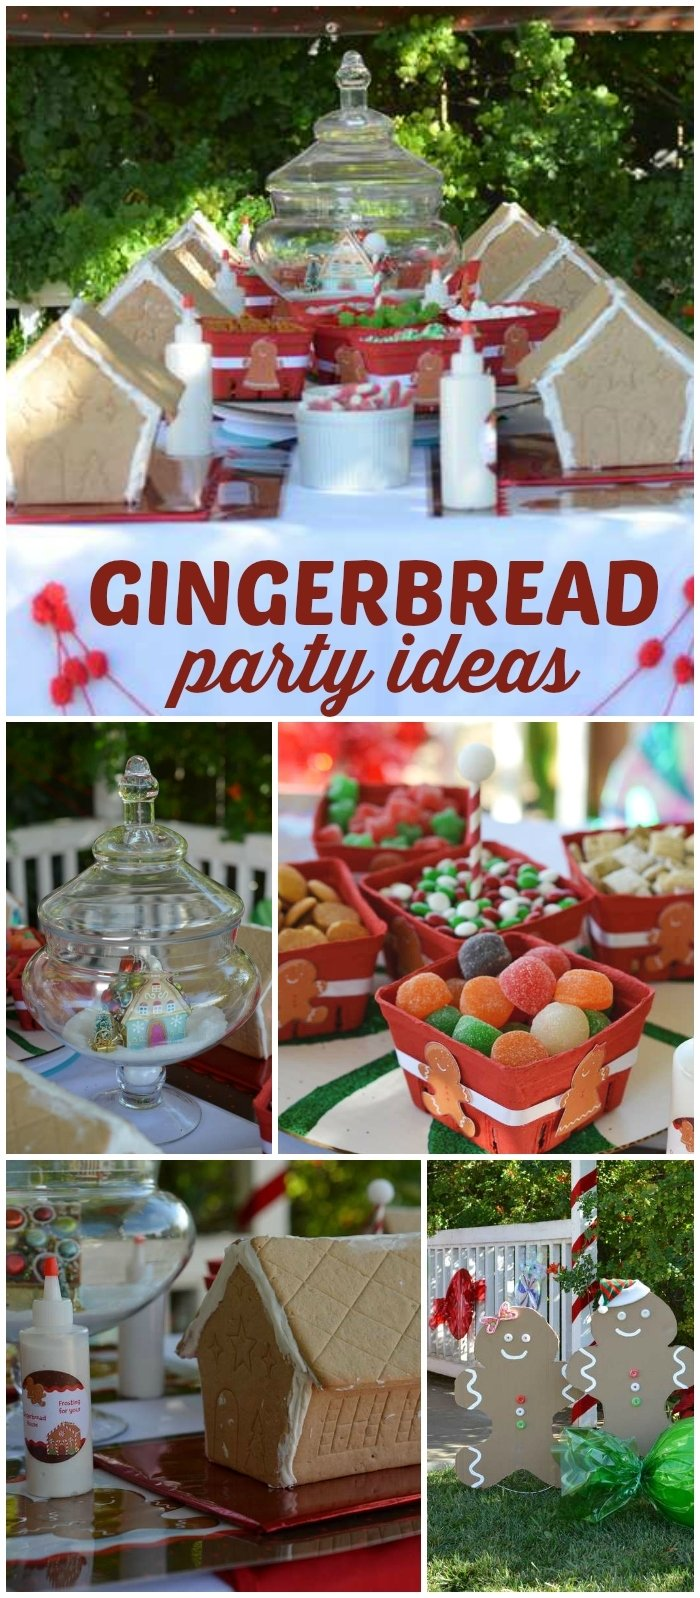 10 Fashionable Gingerbread House Decorating Party Ideas kid friendly gingerbread house party christmas holiday 2020